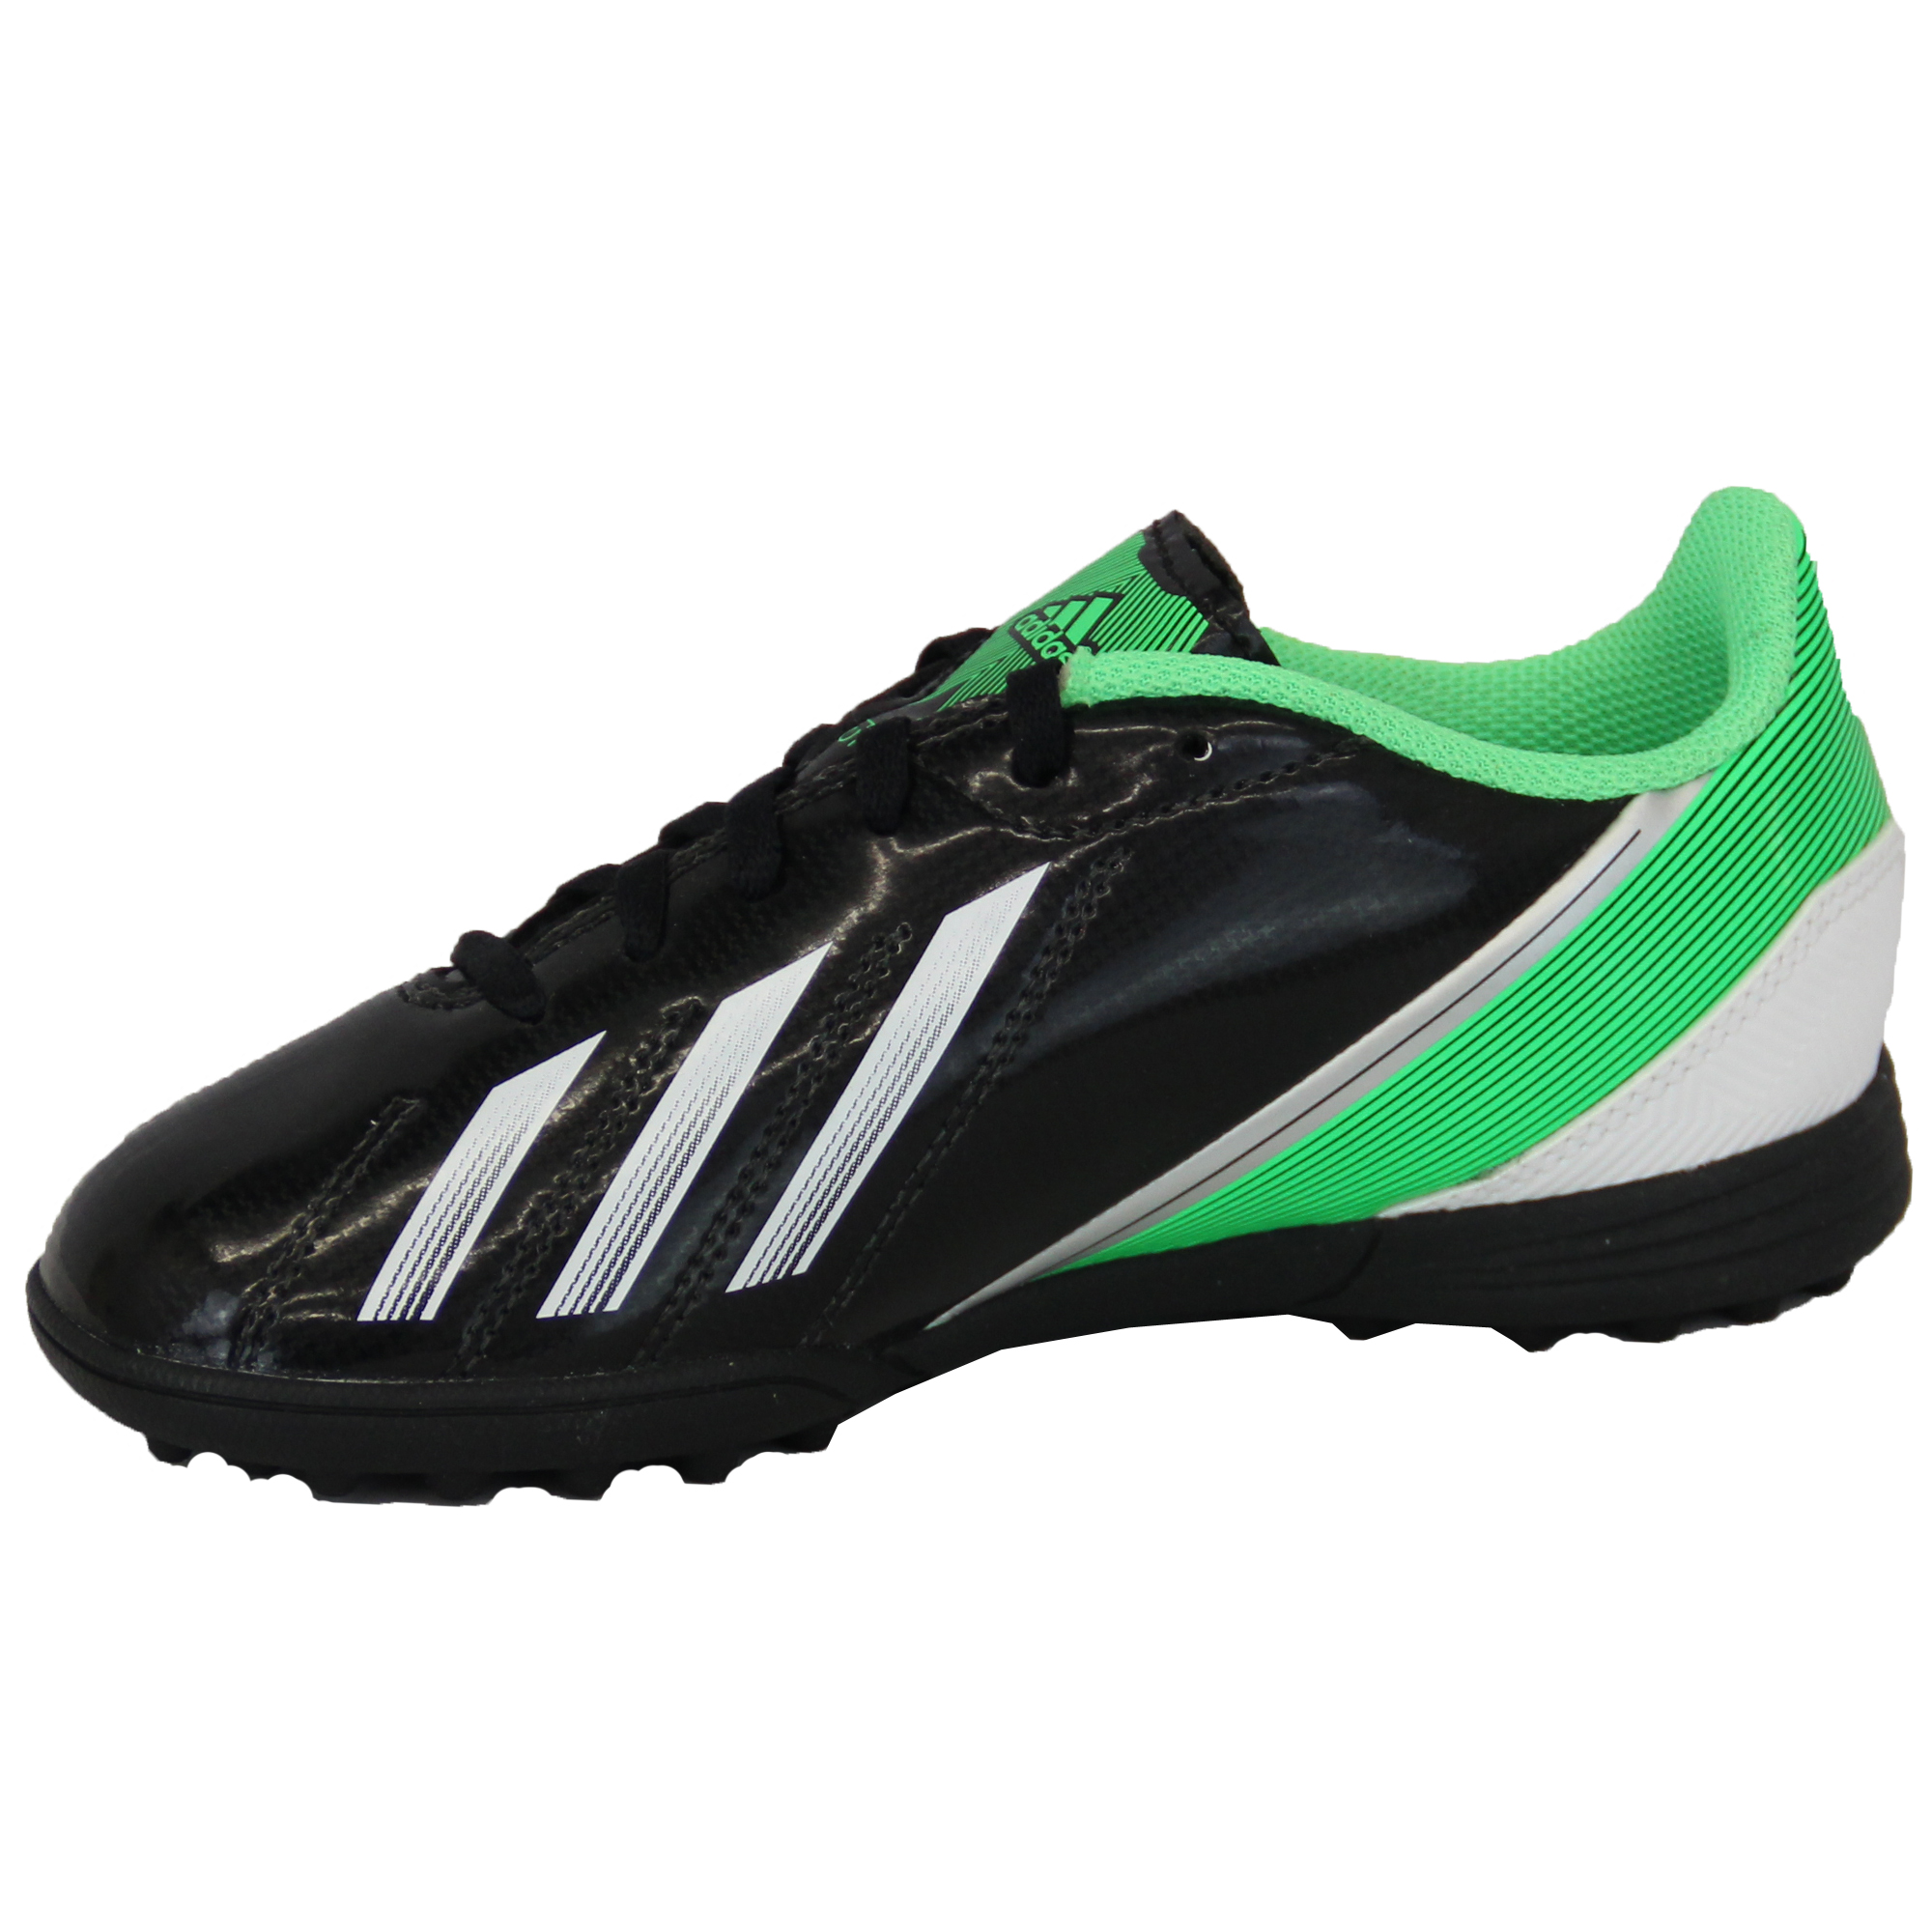 Boys-ADIDAS-Trainers-Kids-Football-Soccer-Astro-Turf-Shoes-Lace-Up-Neon-Youth thumbnail 3